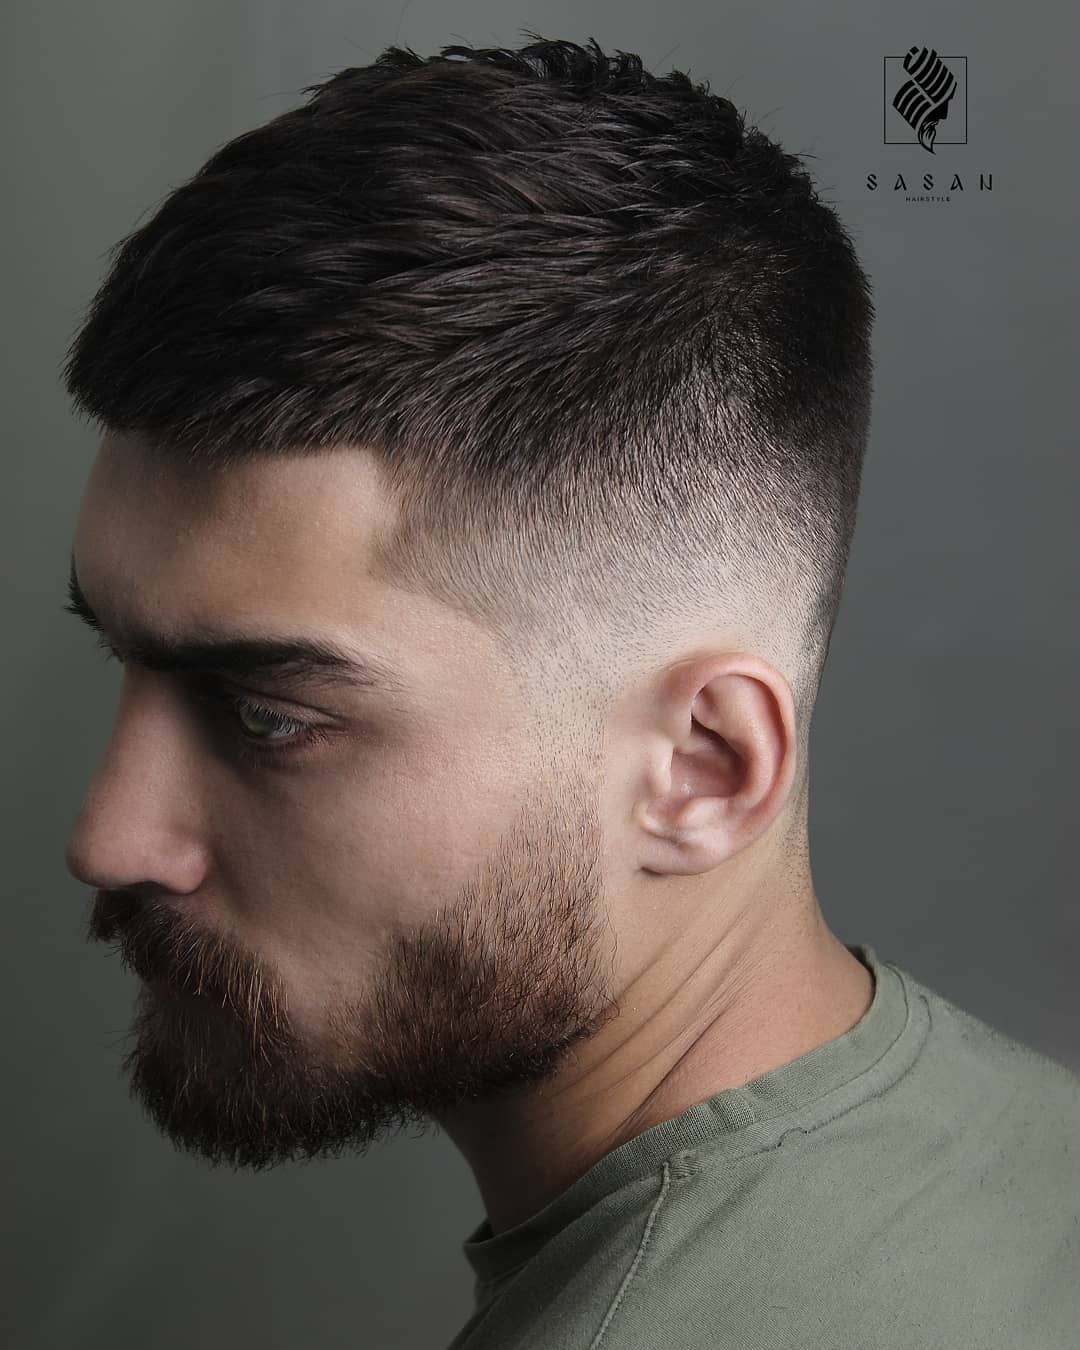 20 Cool Haircuts For Men 2020 Styles Young Men Haircuts Mens Haircuts Short Men Haircut Styles